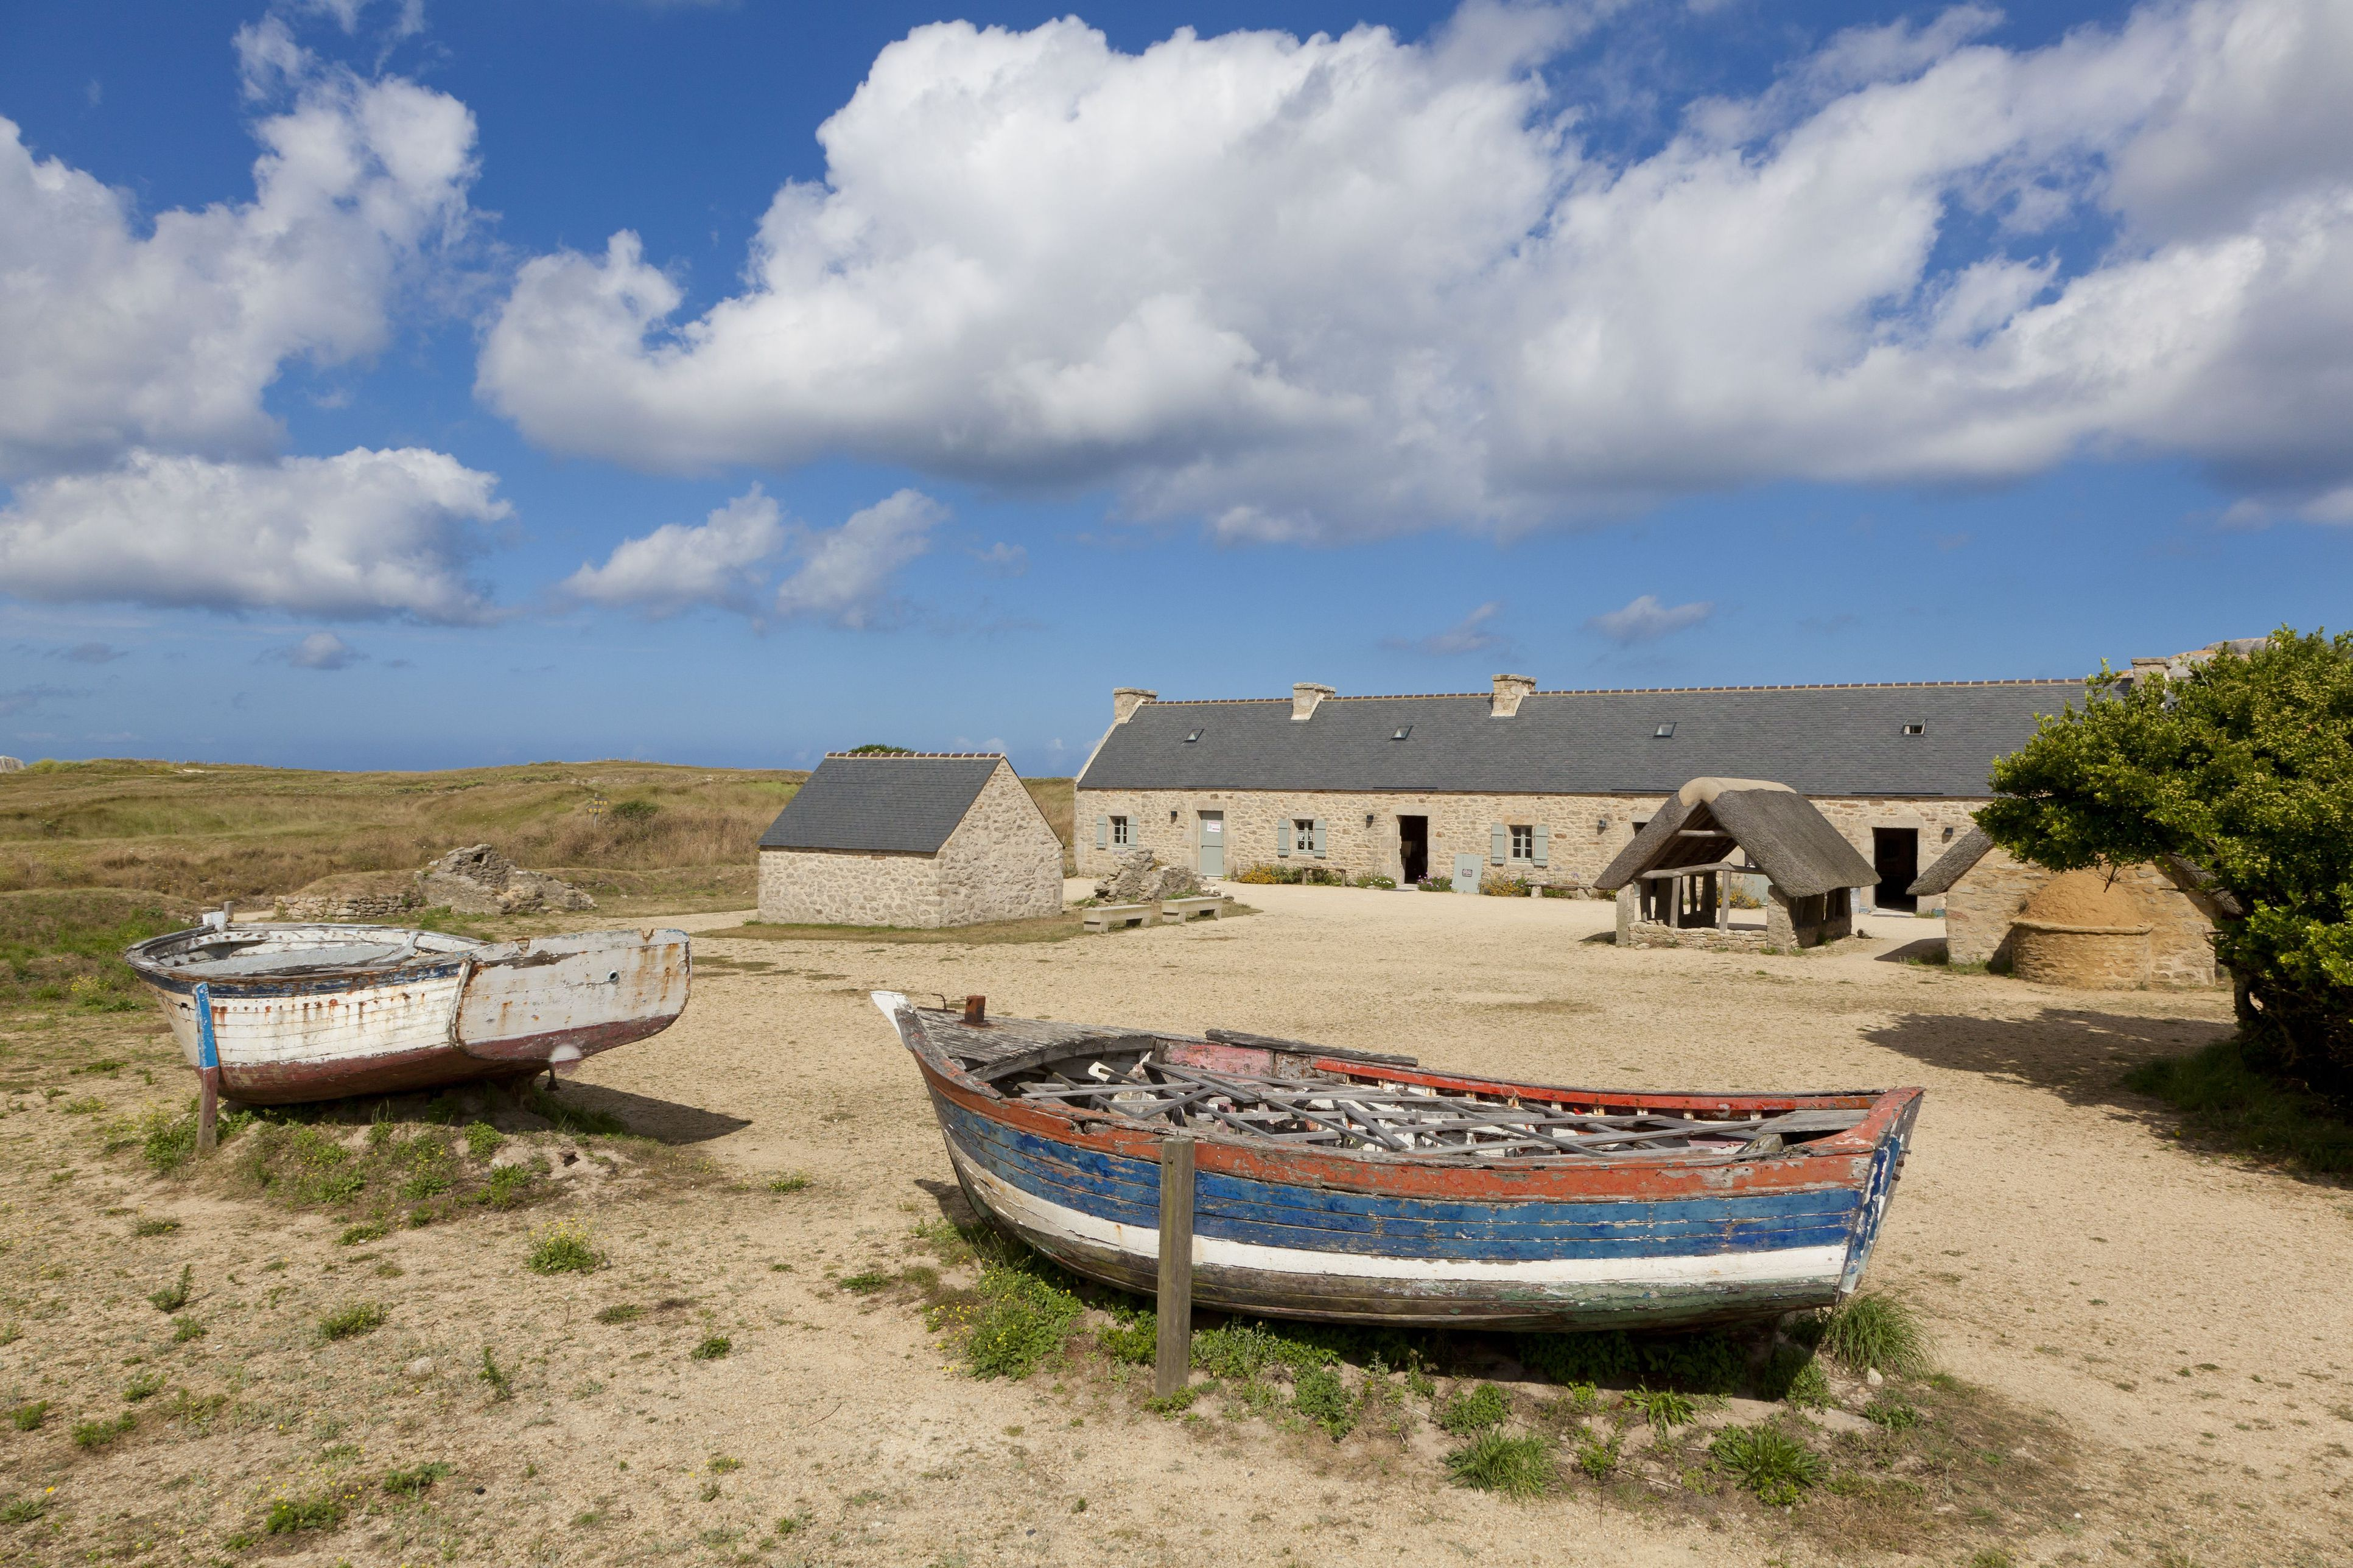 Beached rowboats near a home along the water in Ménéham, north Finistere